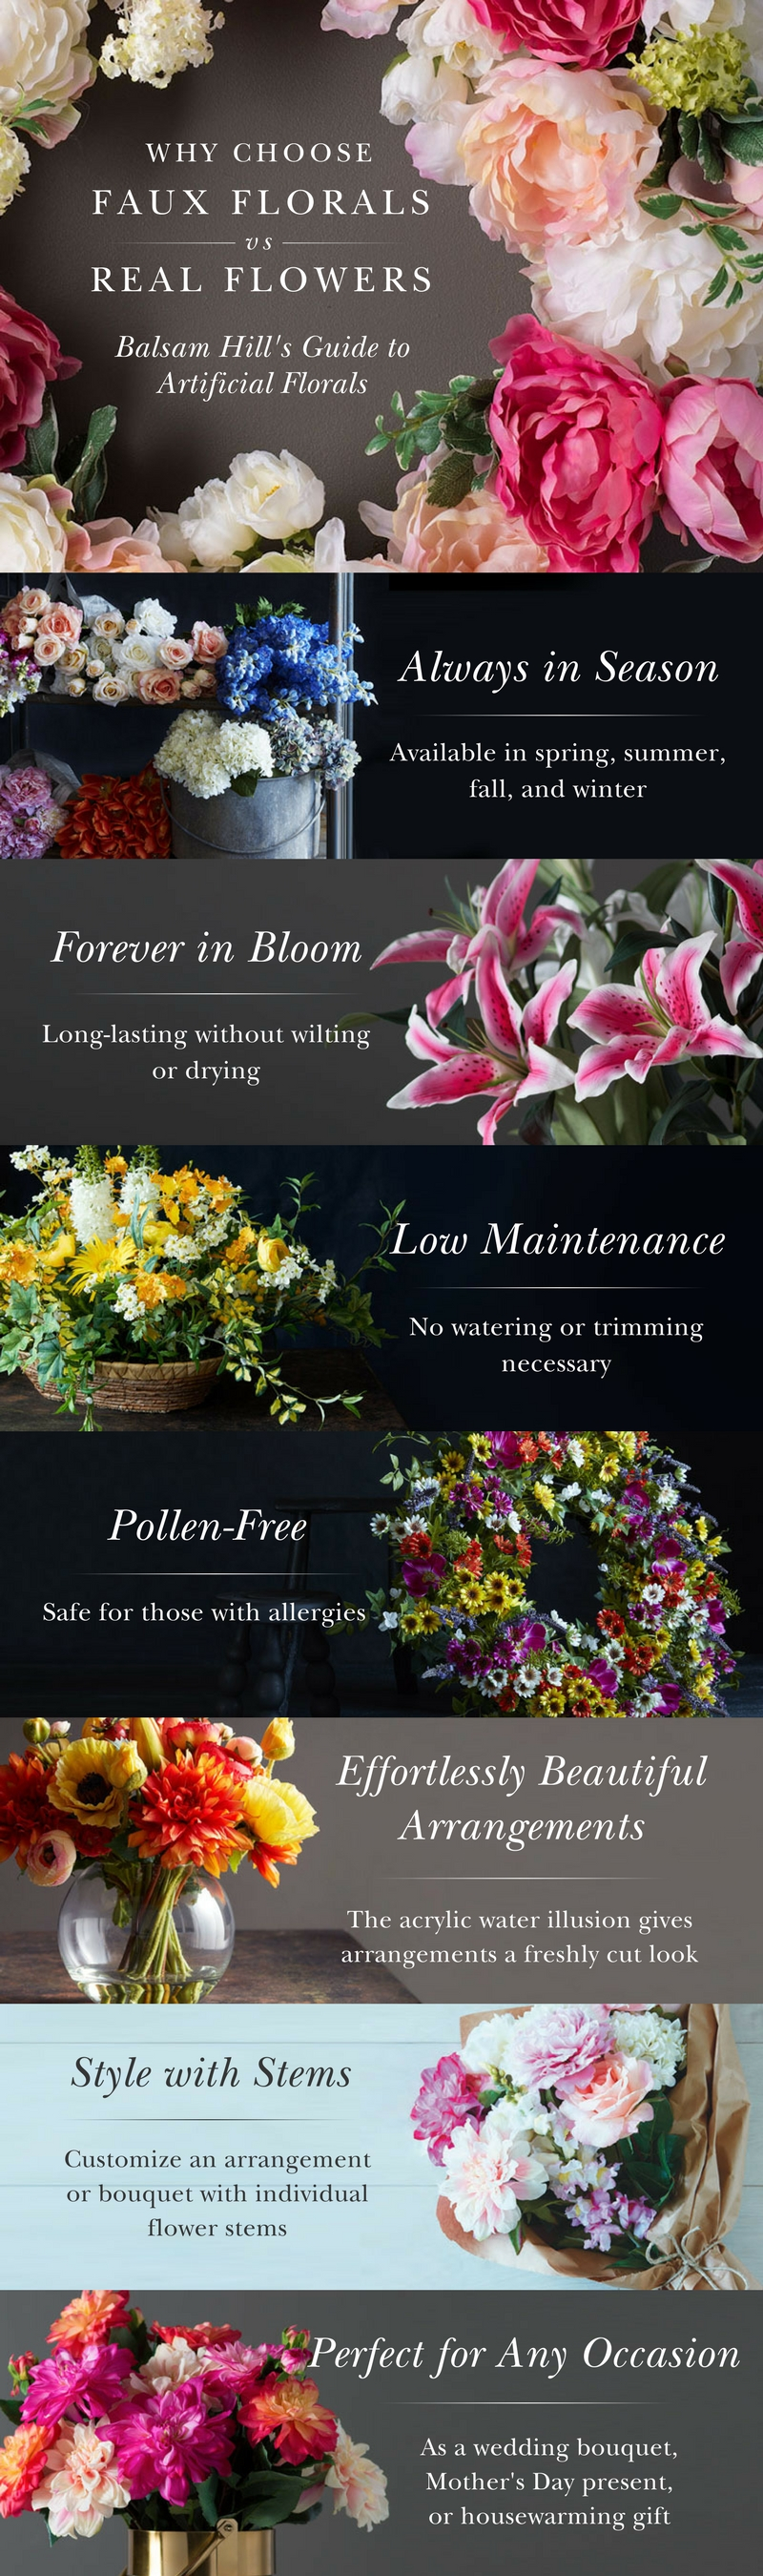 Real Vs Faux Balsam Hills Guide To Artificial Florals Balsam